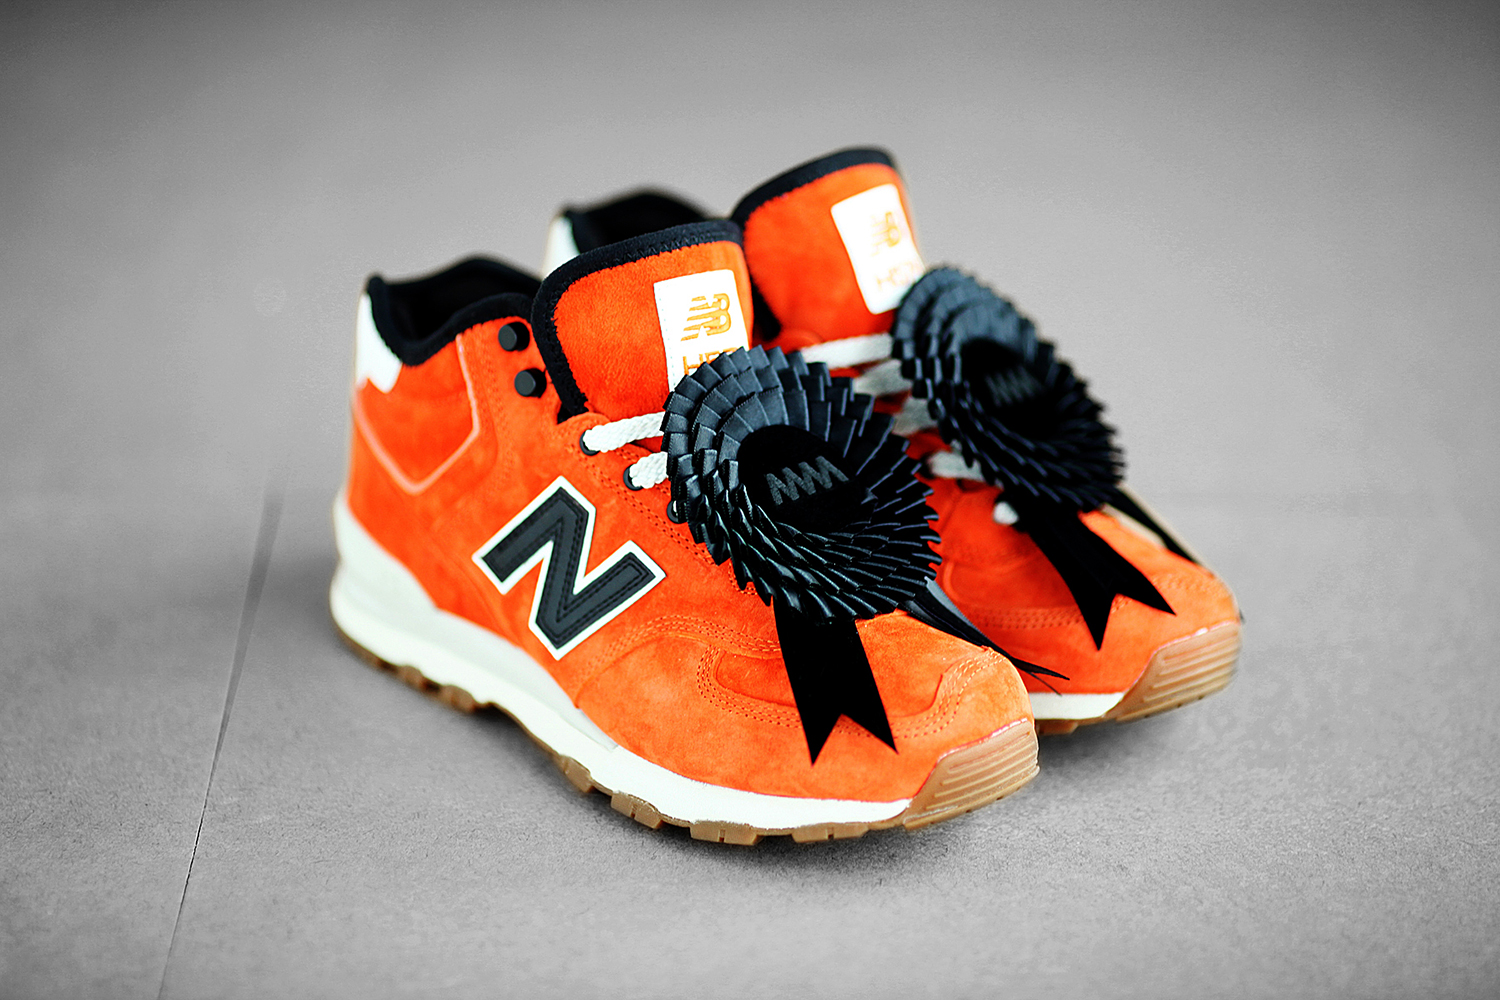 eric kot x 4a like black x new balance h574 further look